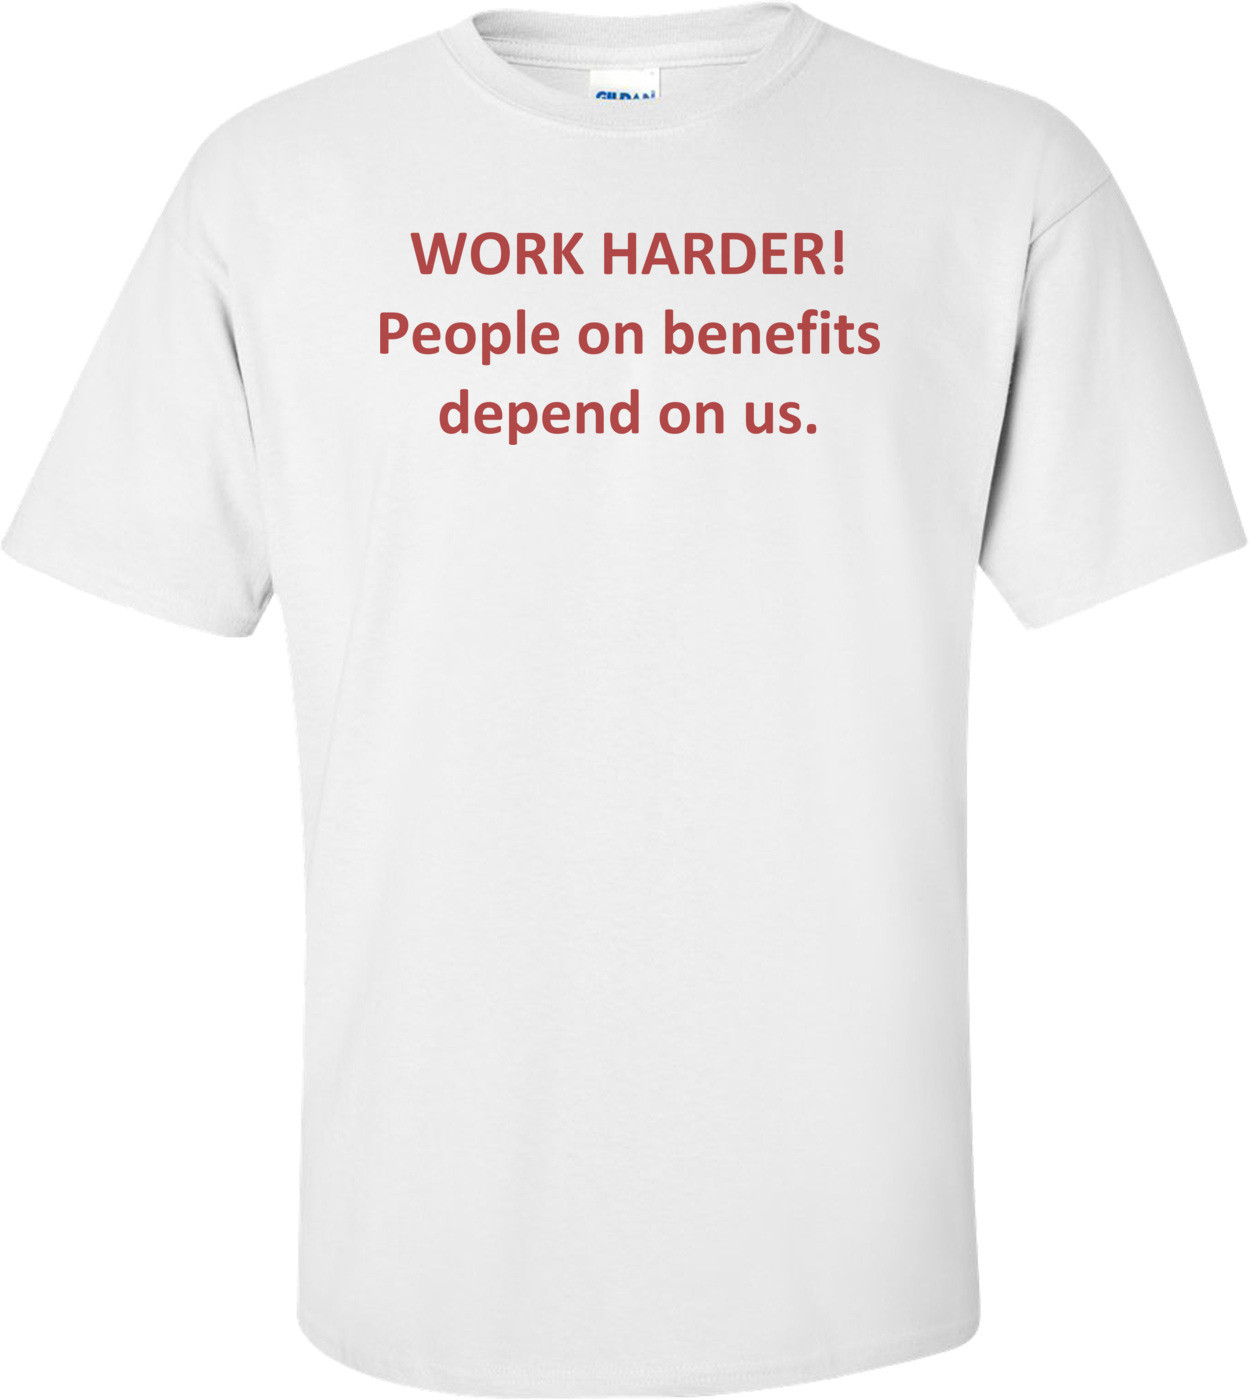 WORK HARDER! People on benefits depend on us. Shirt